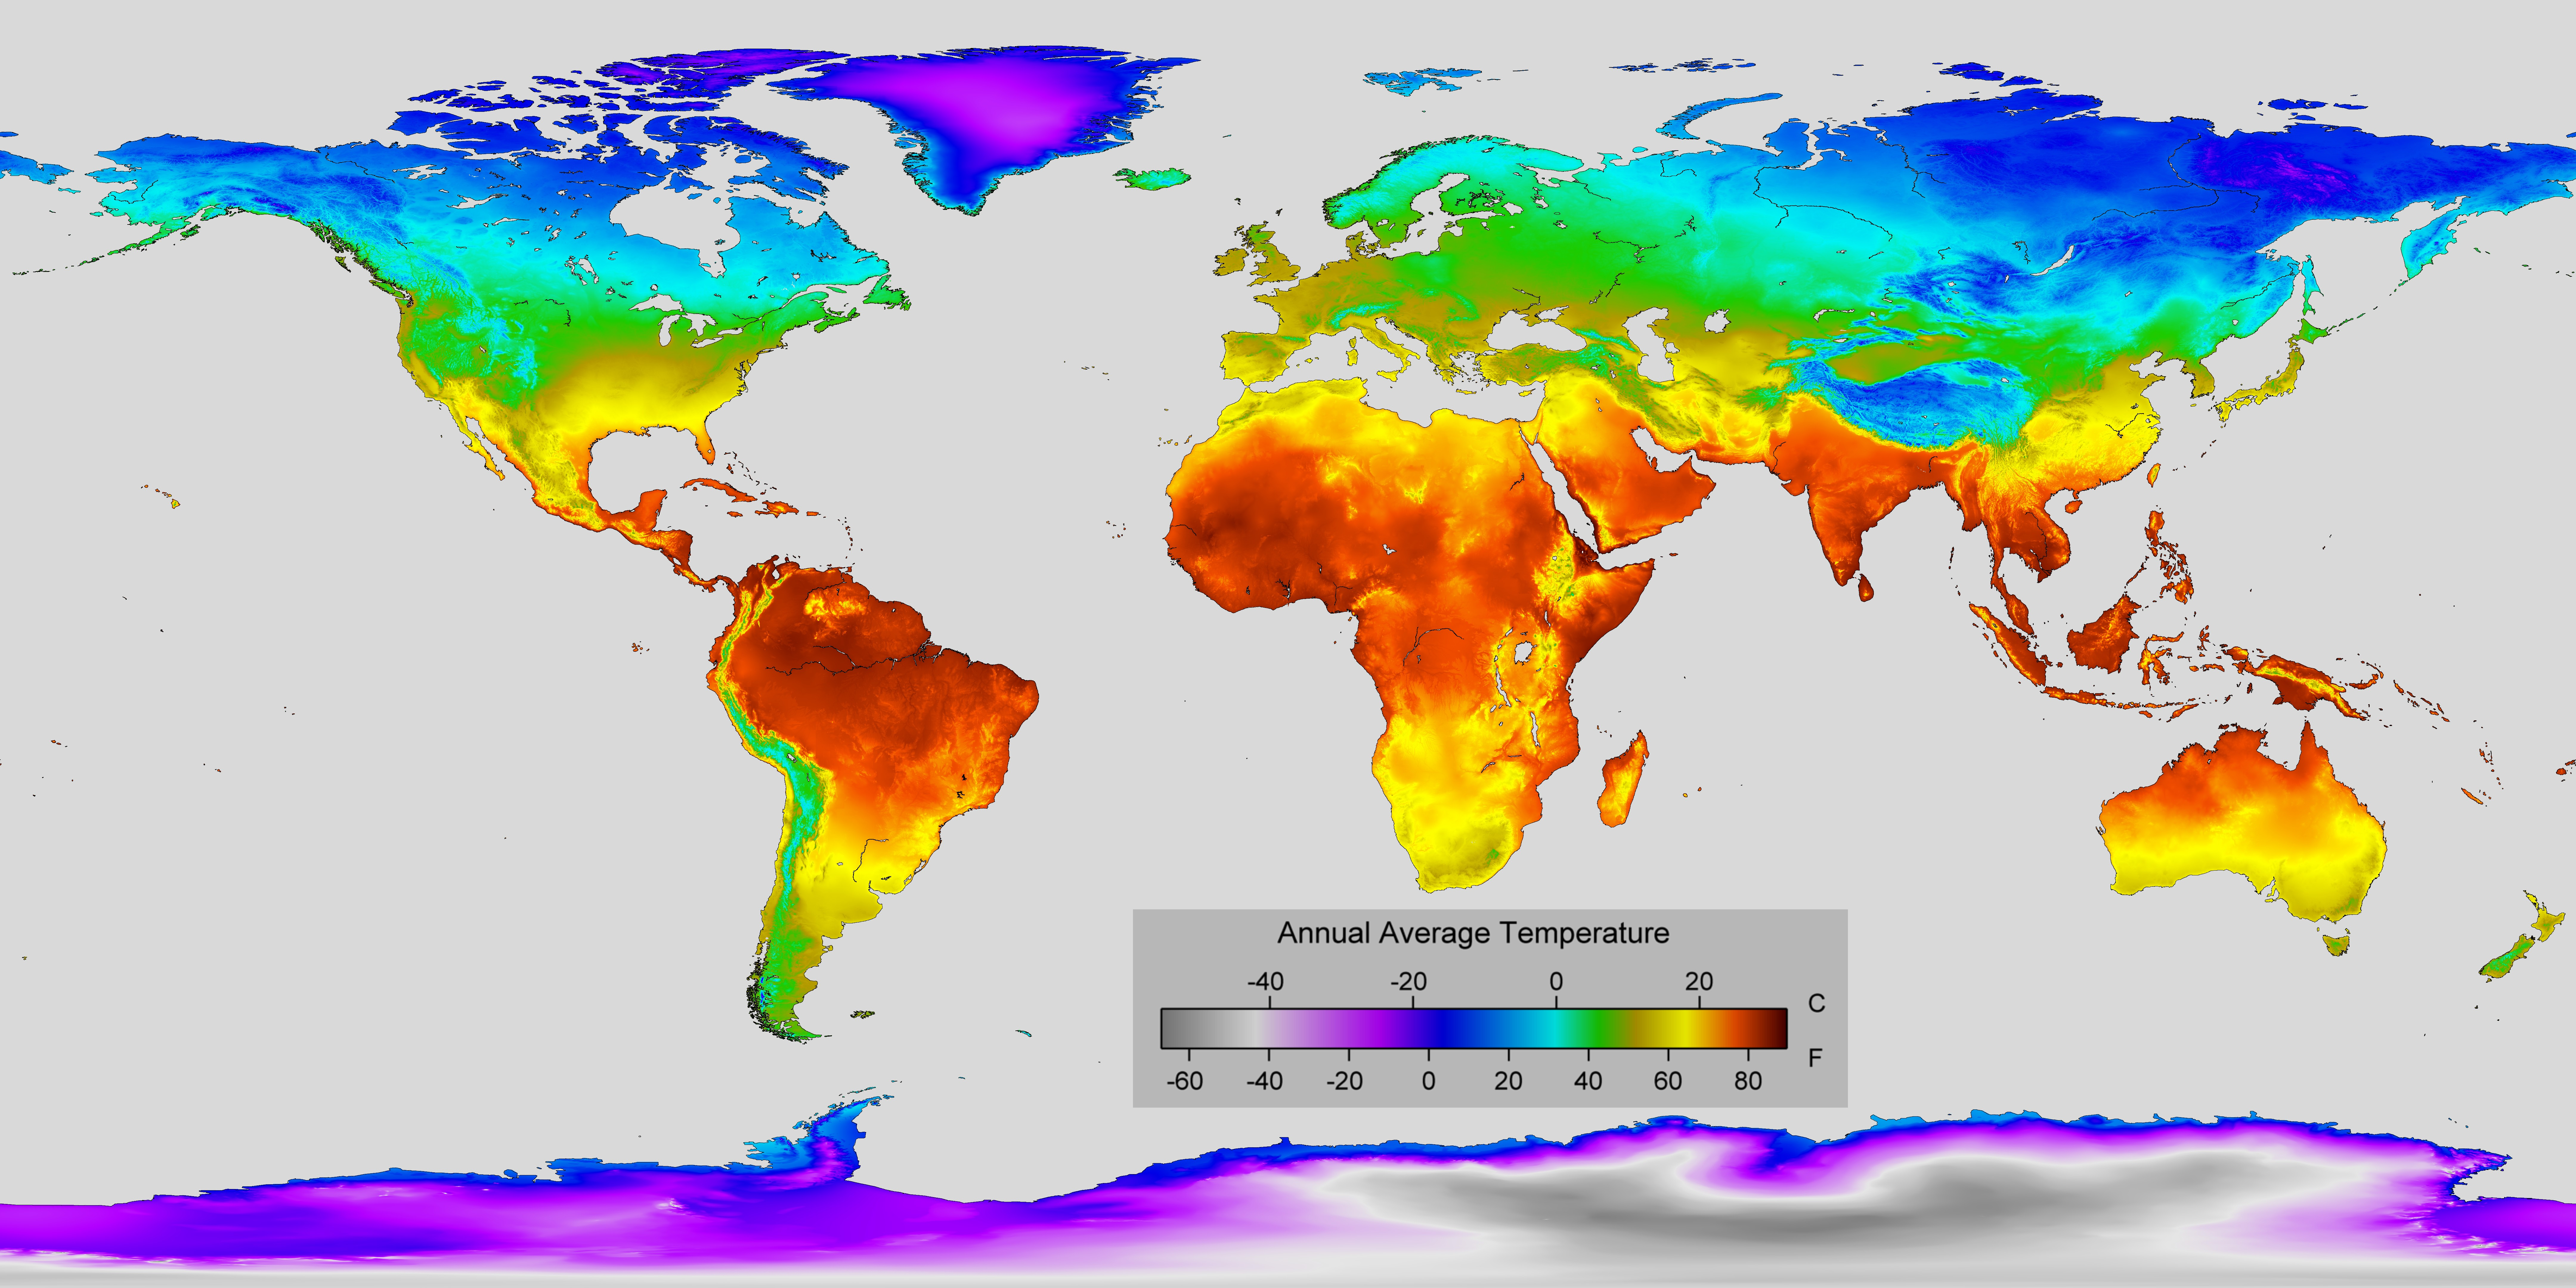 Detailed Map Of Annual Average Temperature Around The